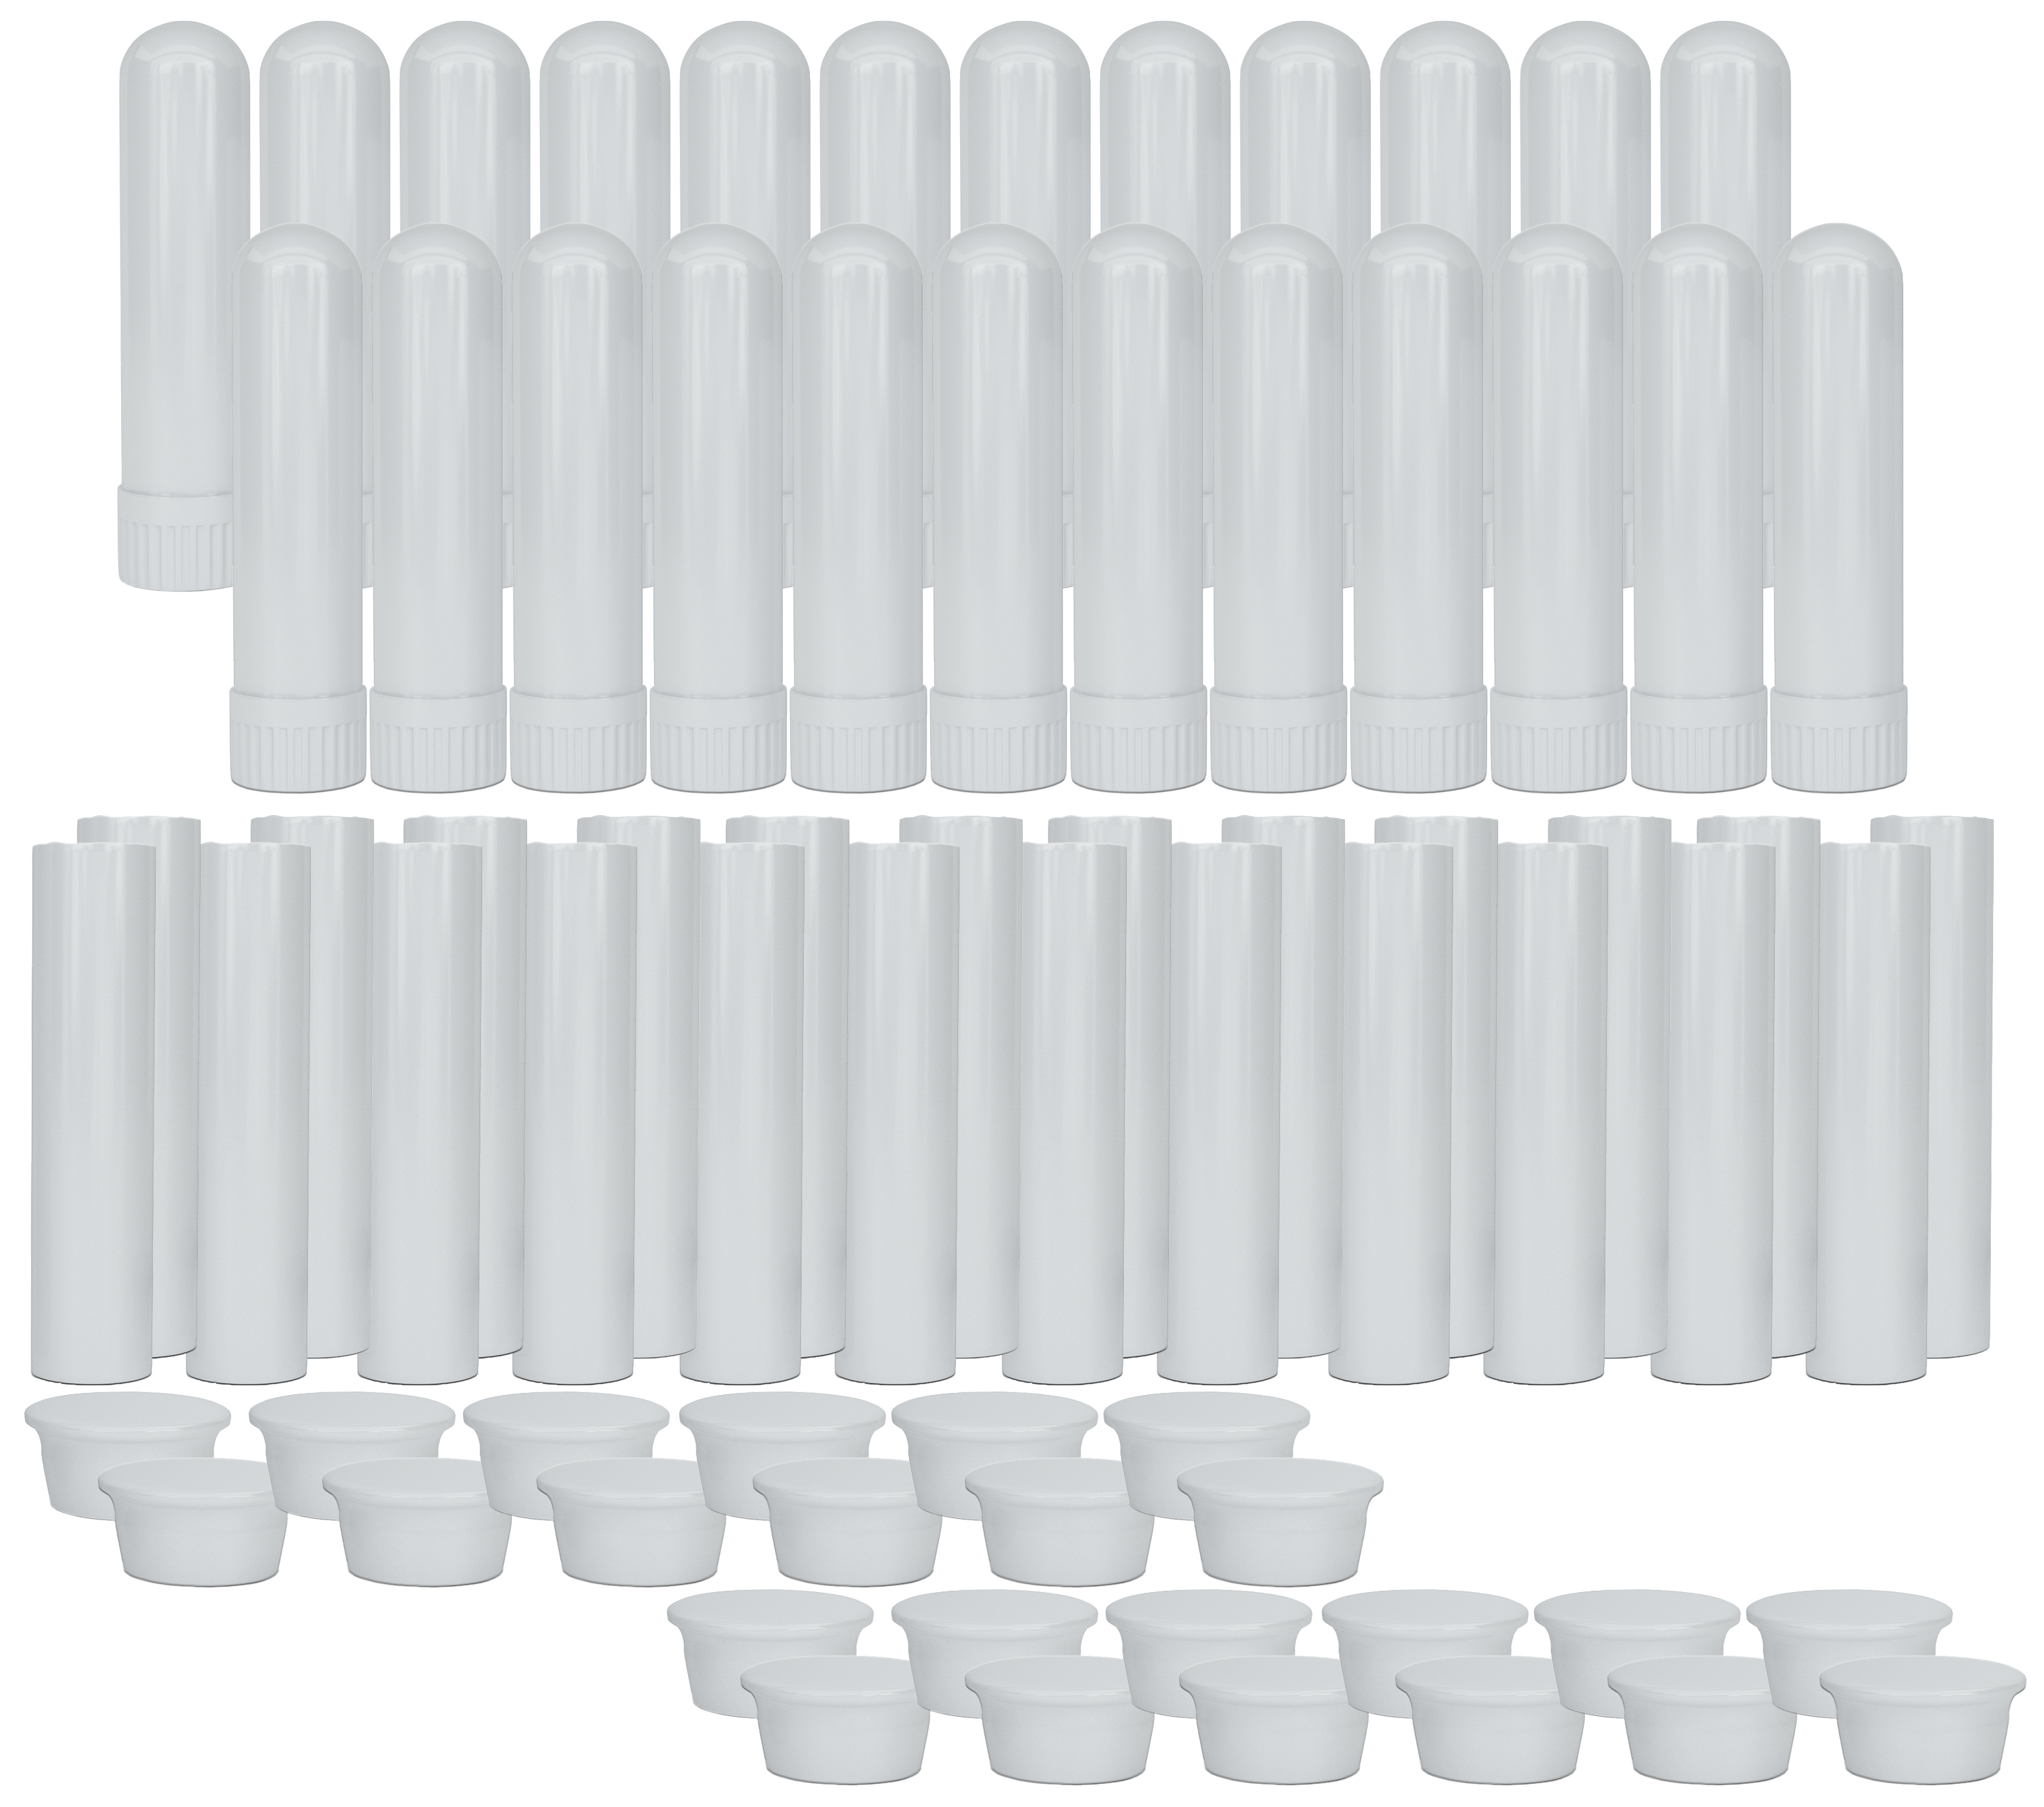 B011A1HRK8 - Essential Oil Aromatherapy Blank Nasal Inhaler Tubes (24 Complete Sticks) 1